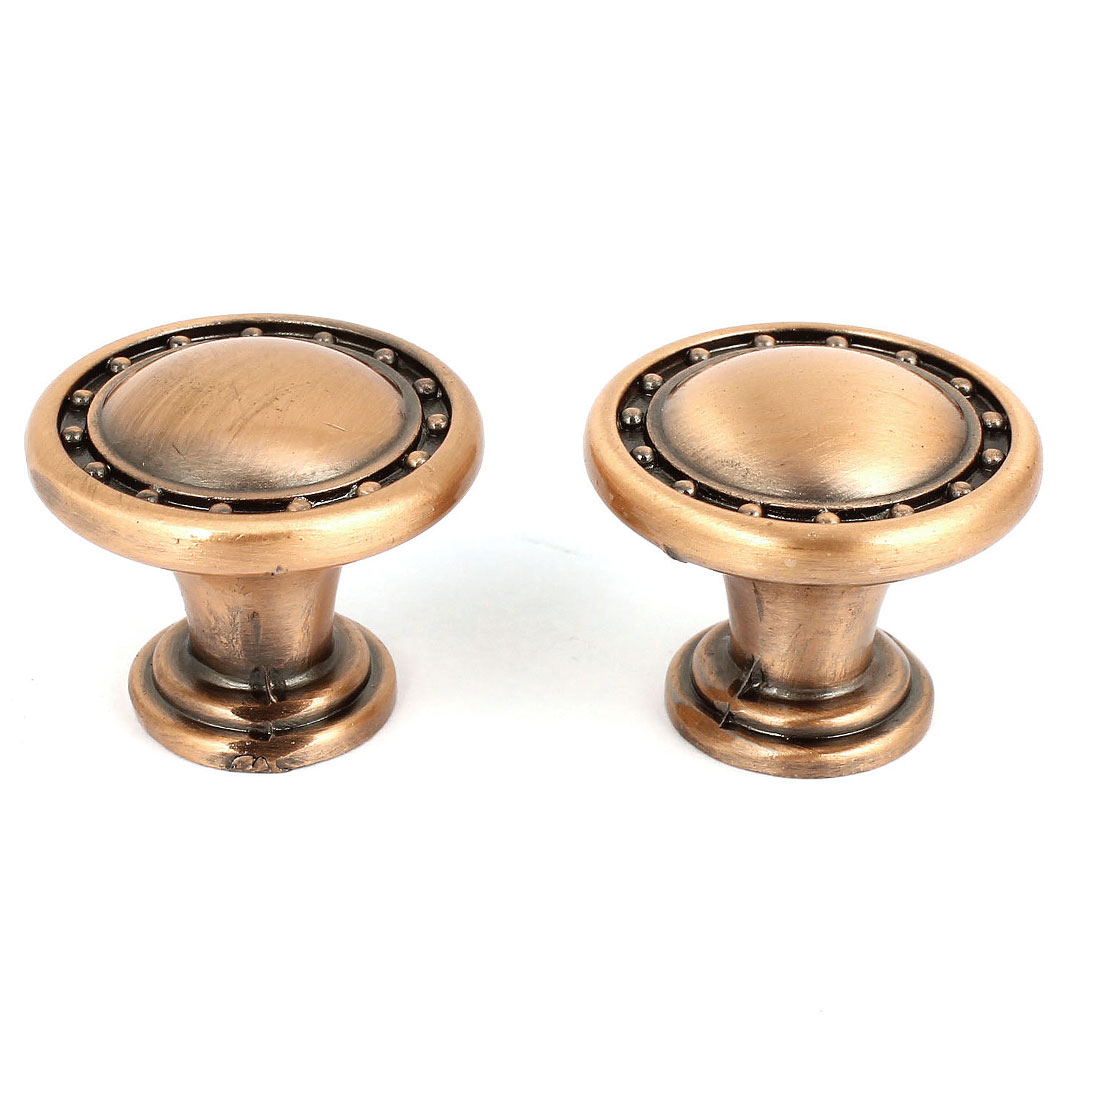 "Copper Tone Metal 1"" Round Knob Pull 2 Pcs for Cupboard Cabinet Door"